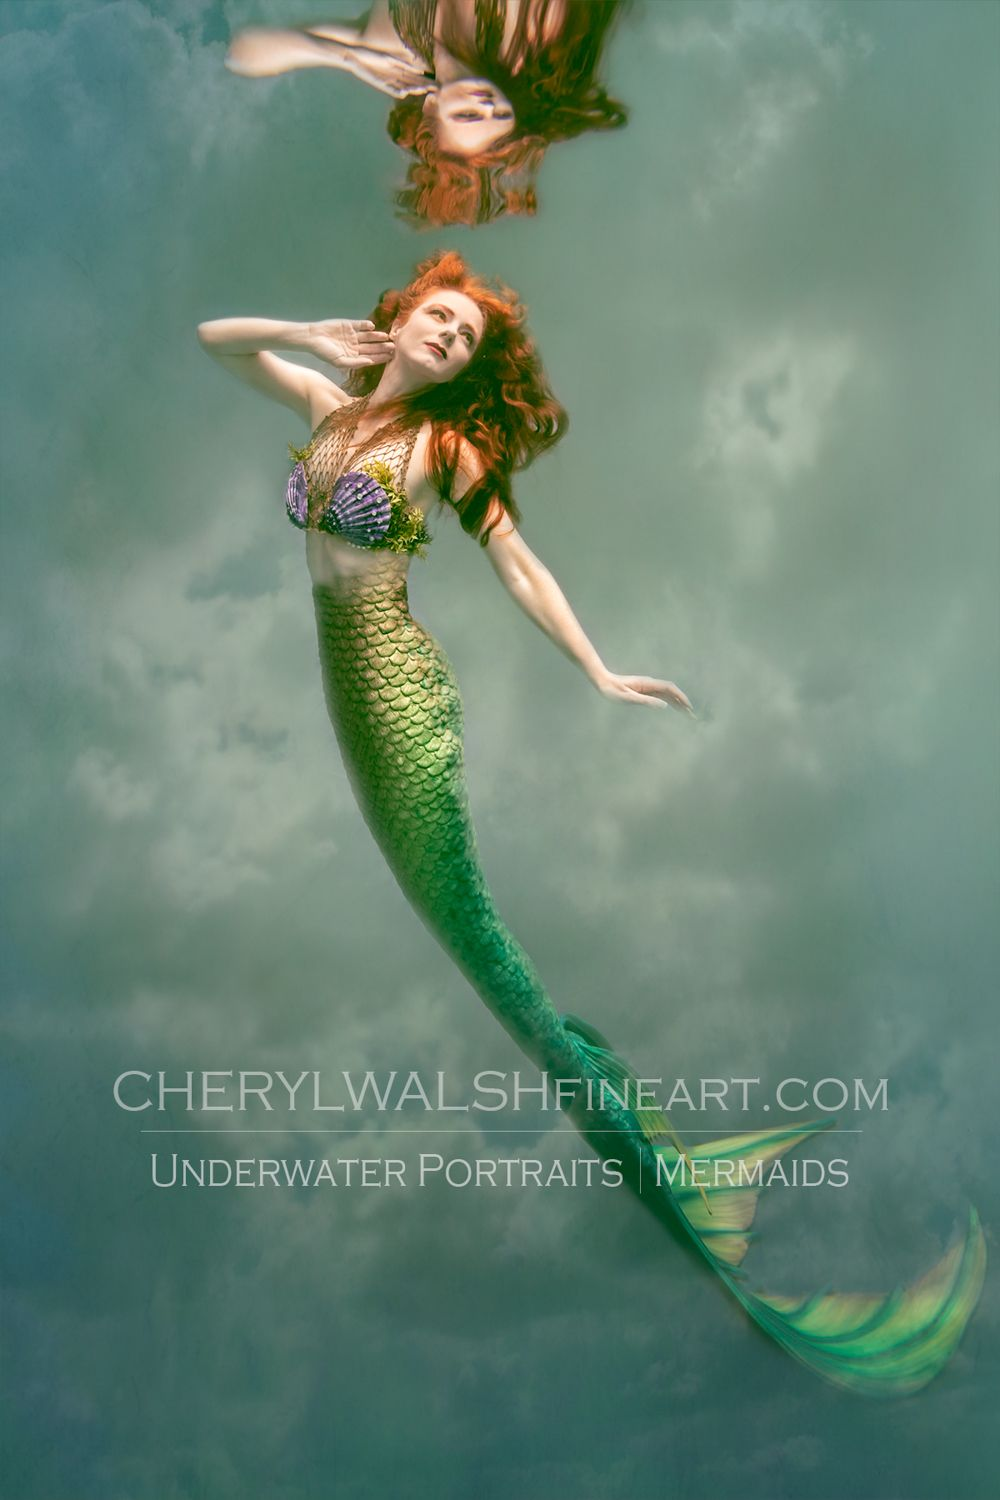 Bask In Ethereal Beauty Of Cheryl Walsh Underwater